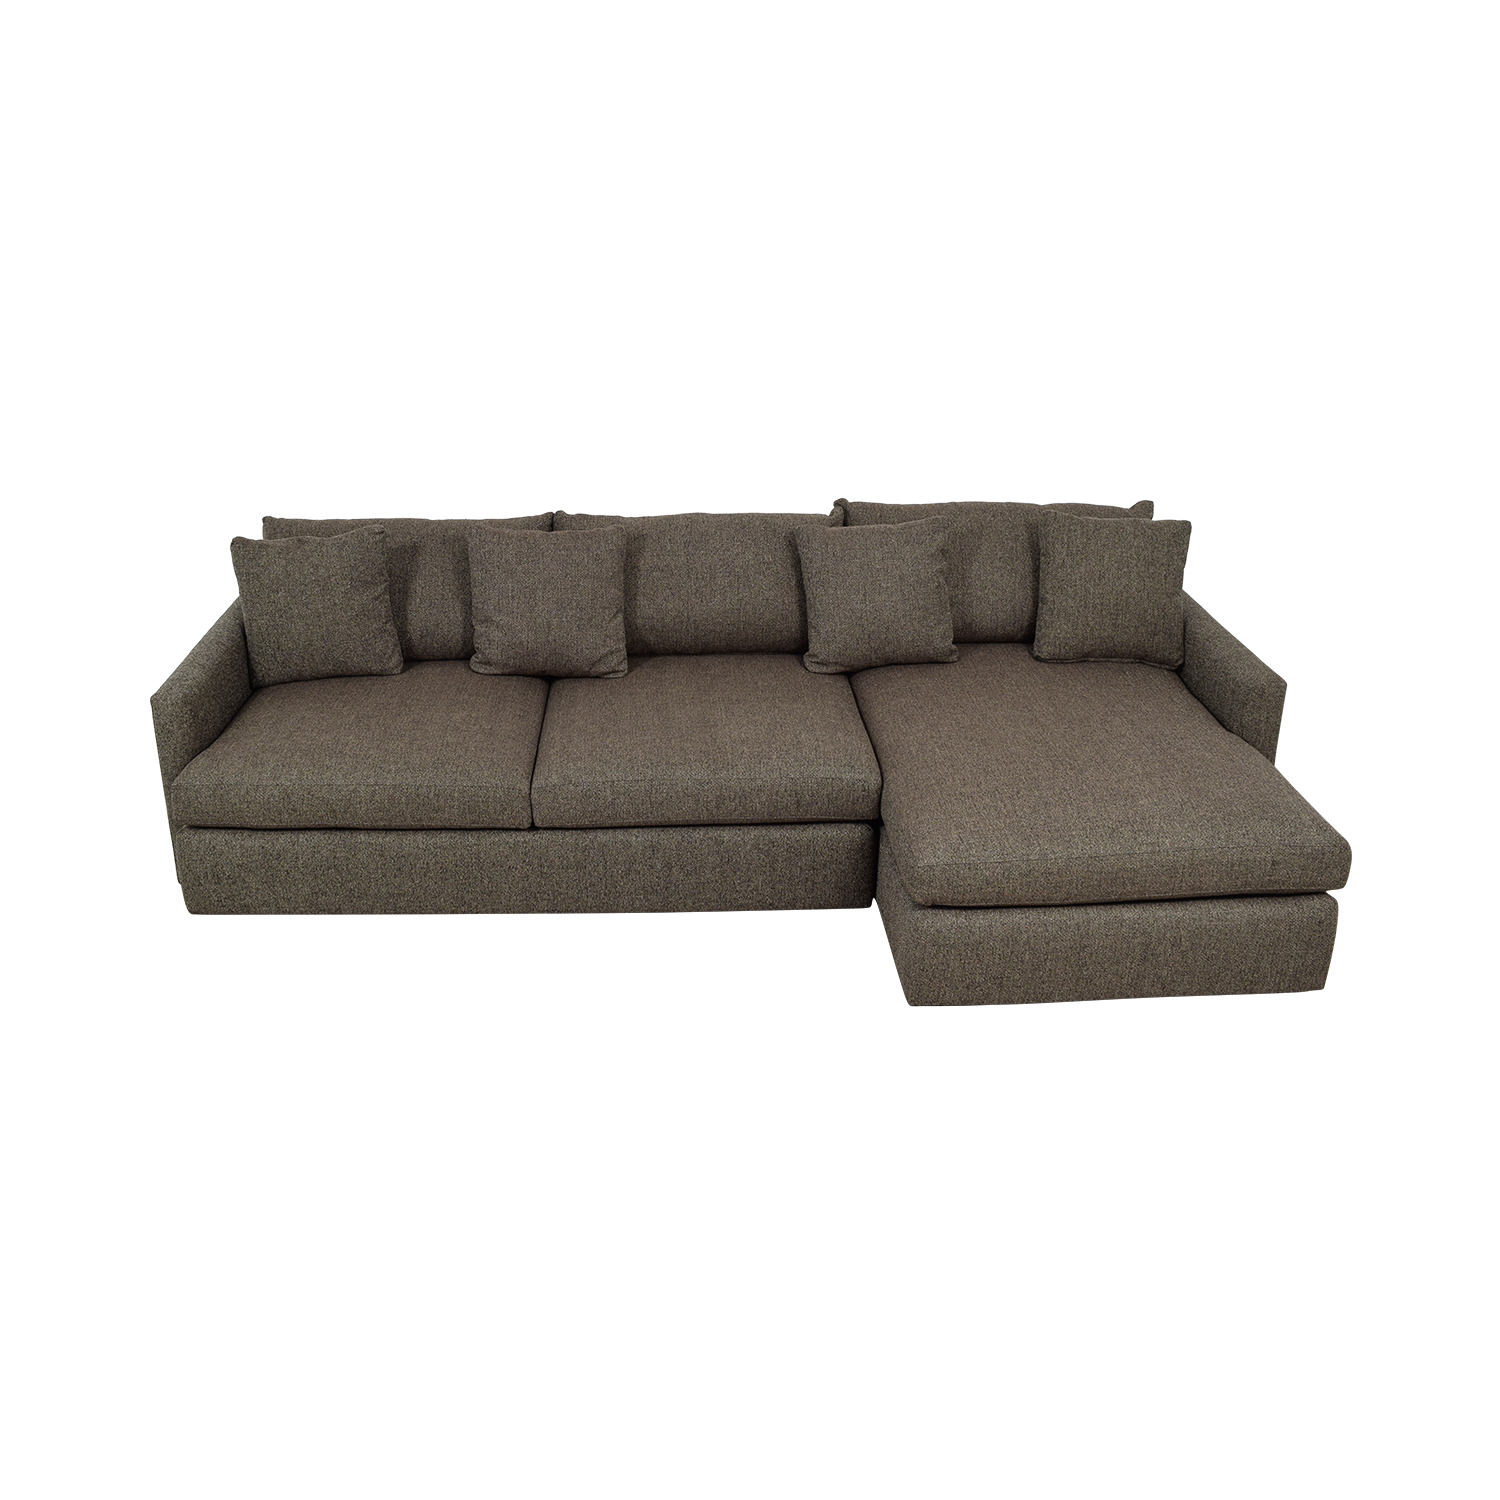 buy Crate & Barrel Crate & Barrel Lounge II Grey Chaise Sectional online